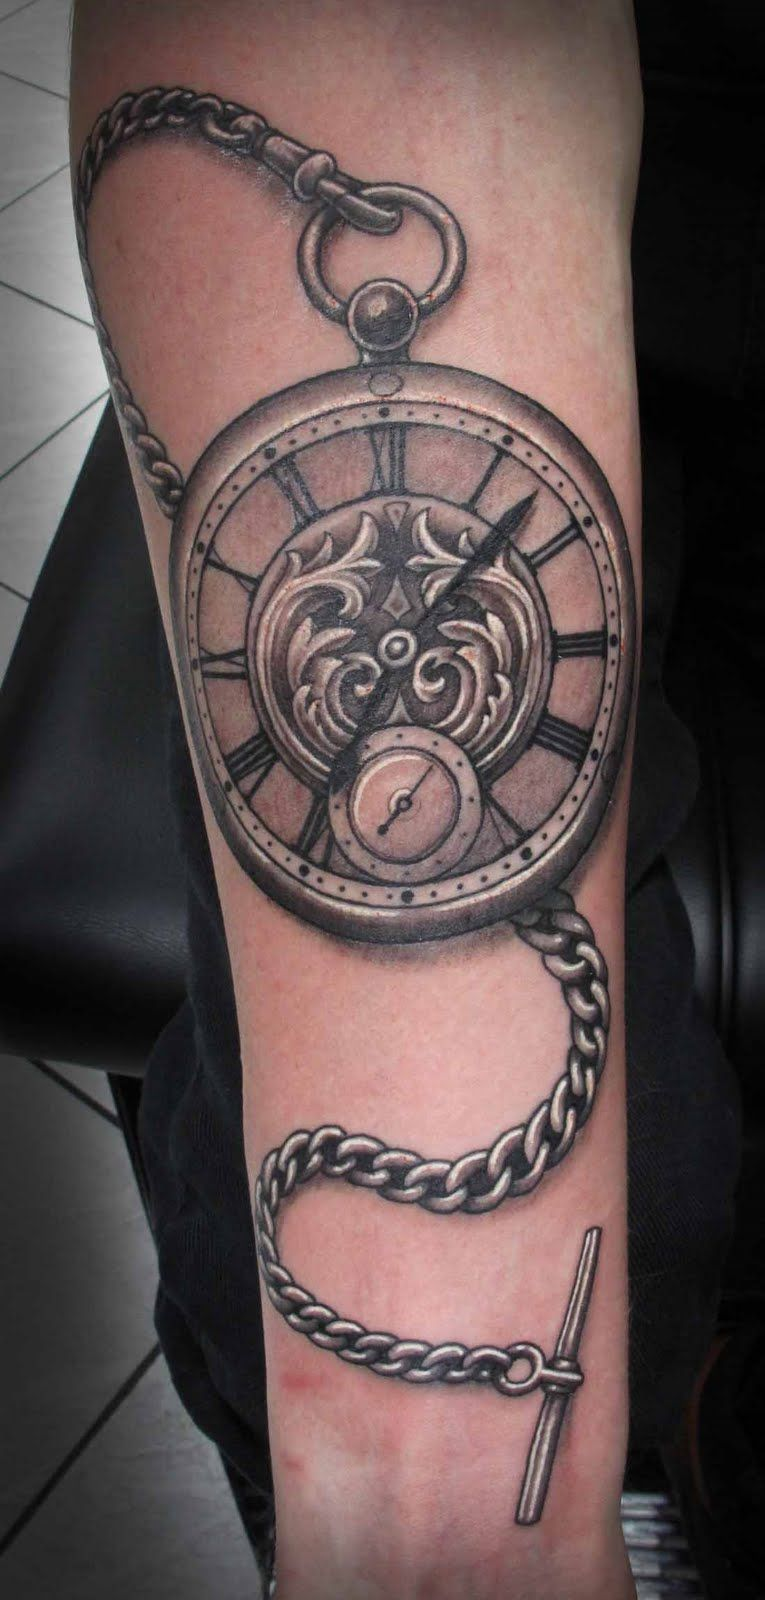 tattoo inspiration for the husband.